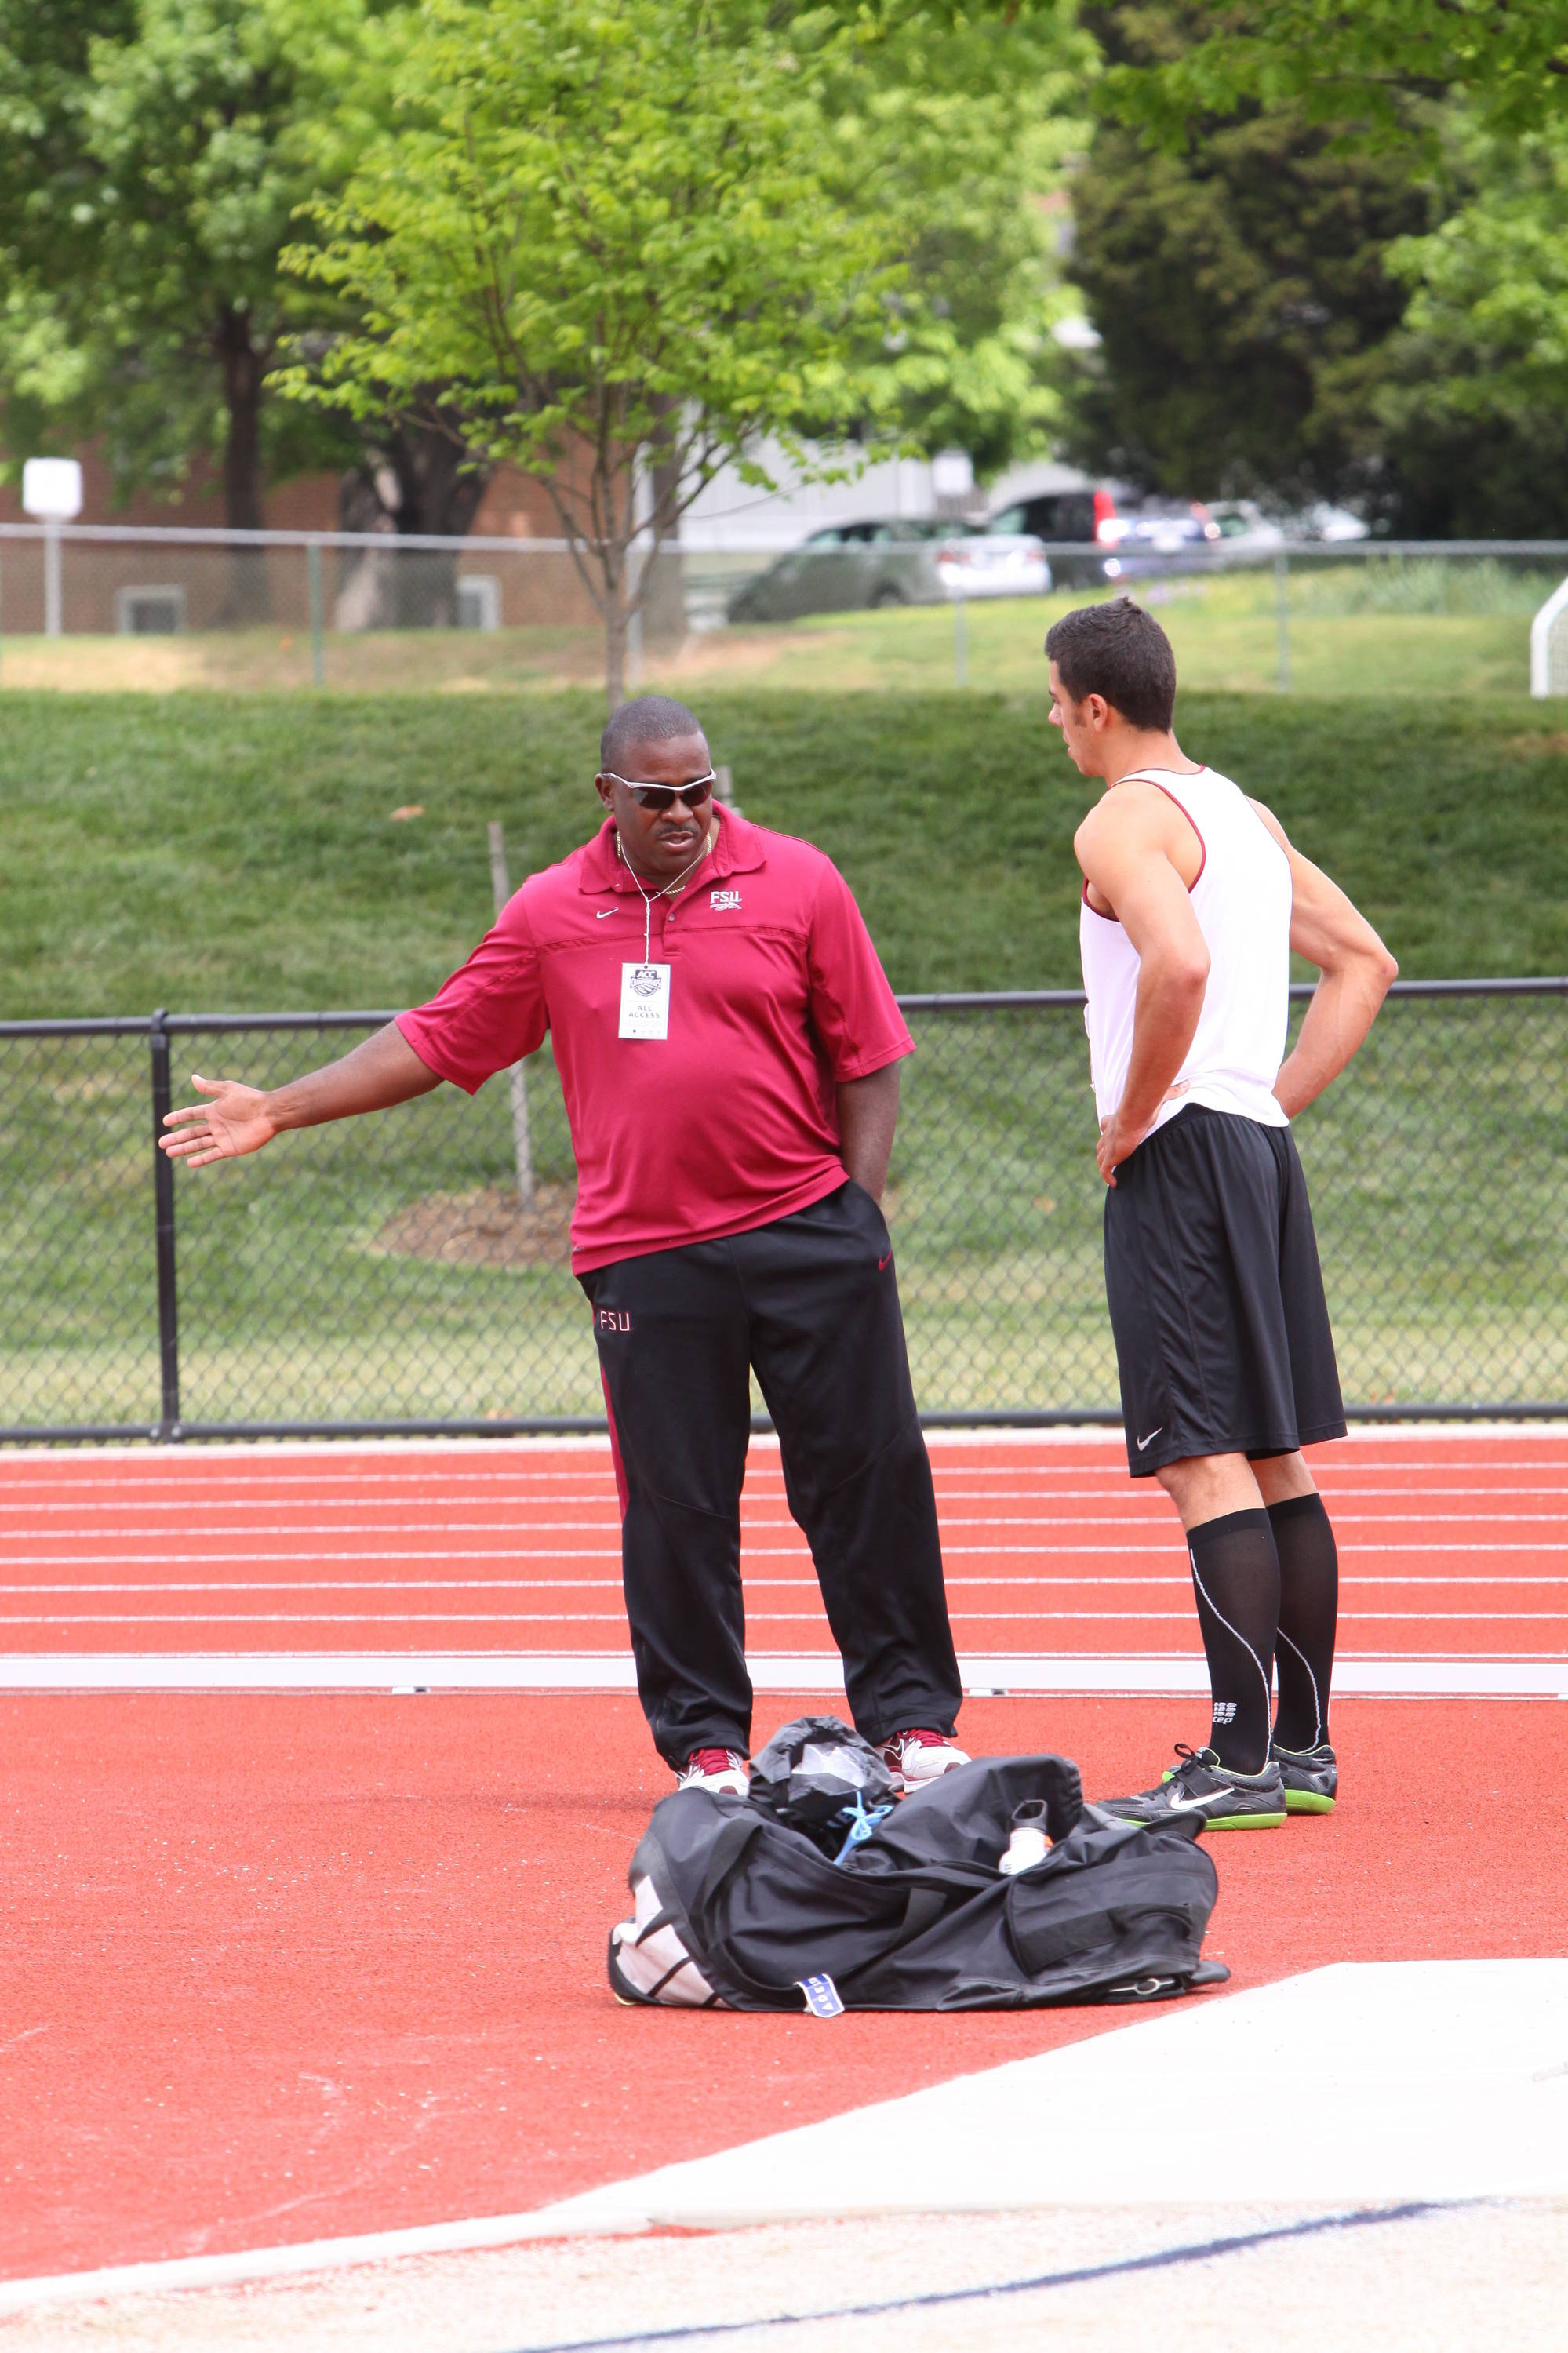 FSU Associate Head Coach and Throws mentor Harlis Meaders shared some pointers with Barroilhet between attempts.